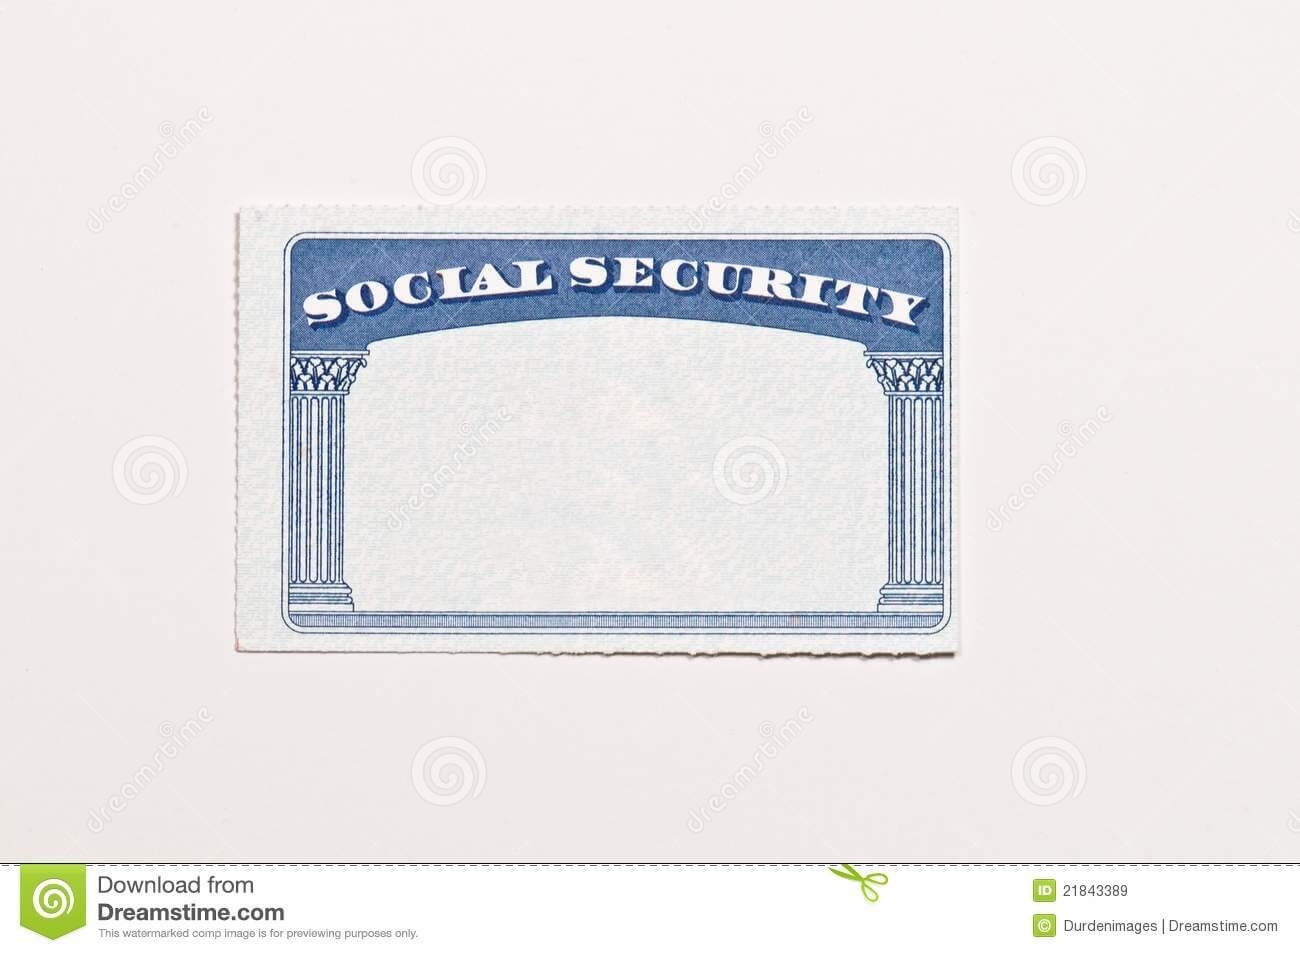 Blank Social Security Card Stock Image. Image Of Document With Regard To Social Security Card Template Free